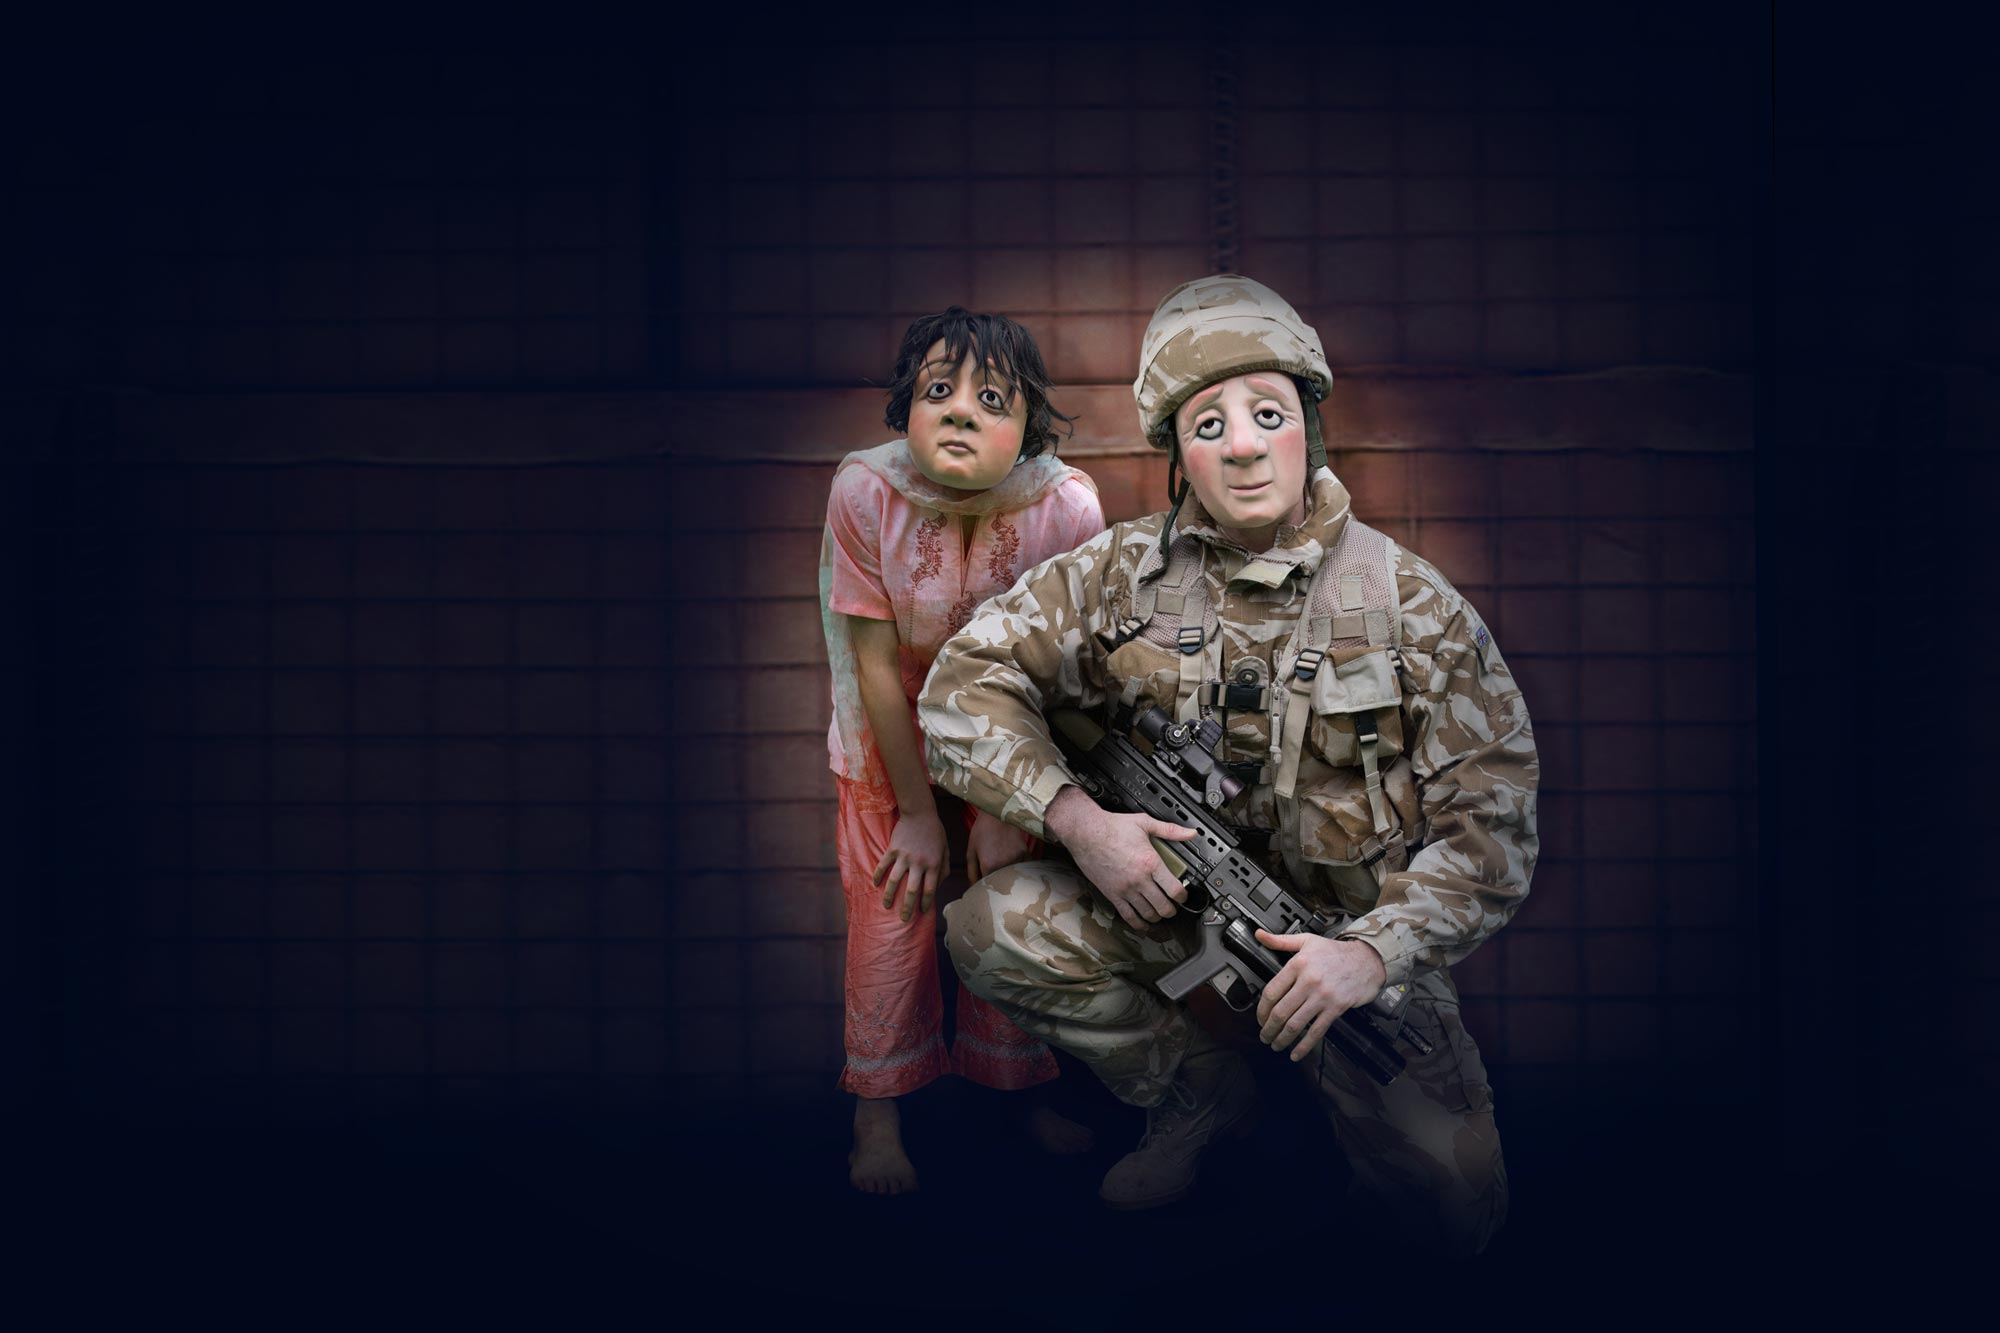 Little girl stands next to soldier